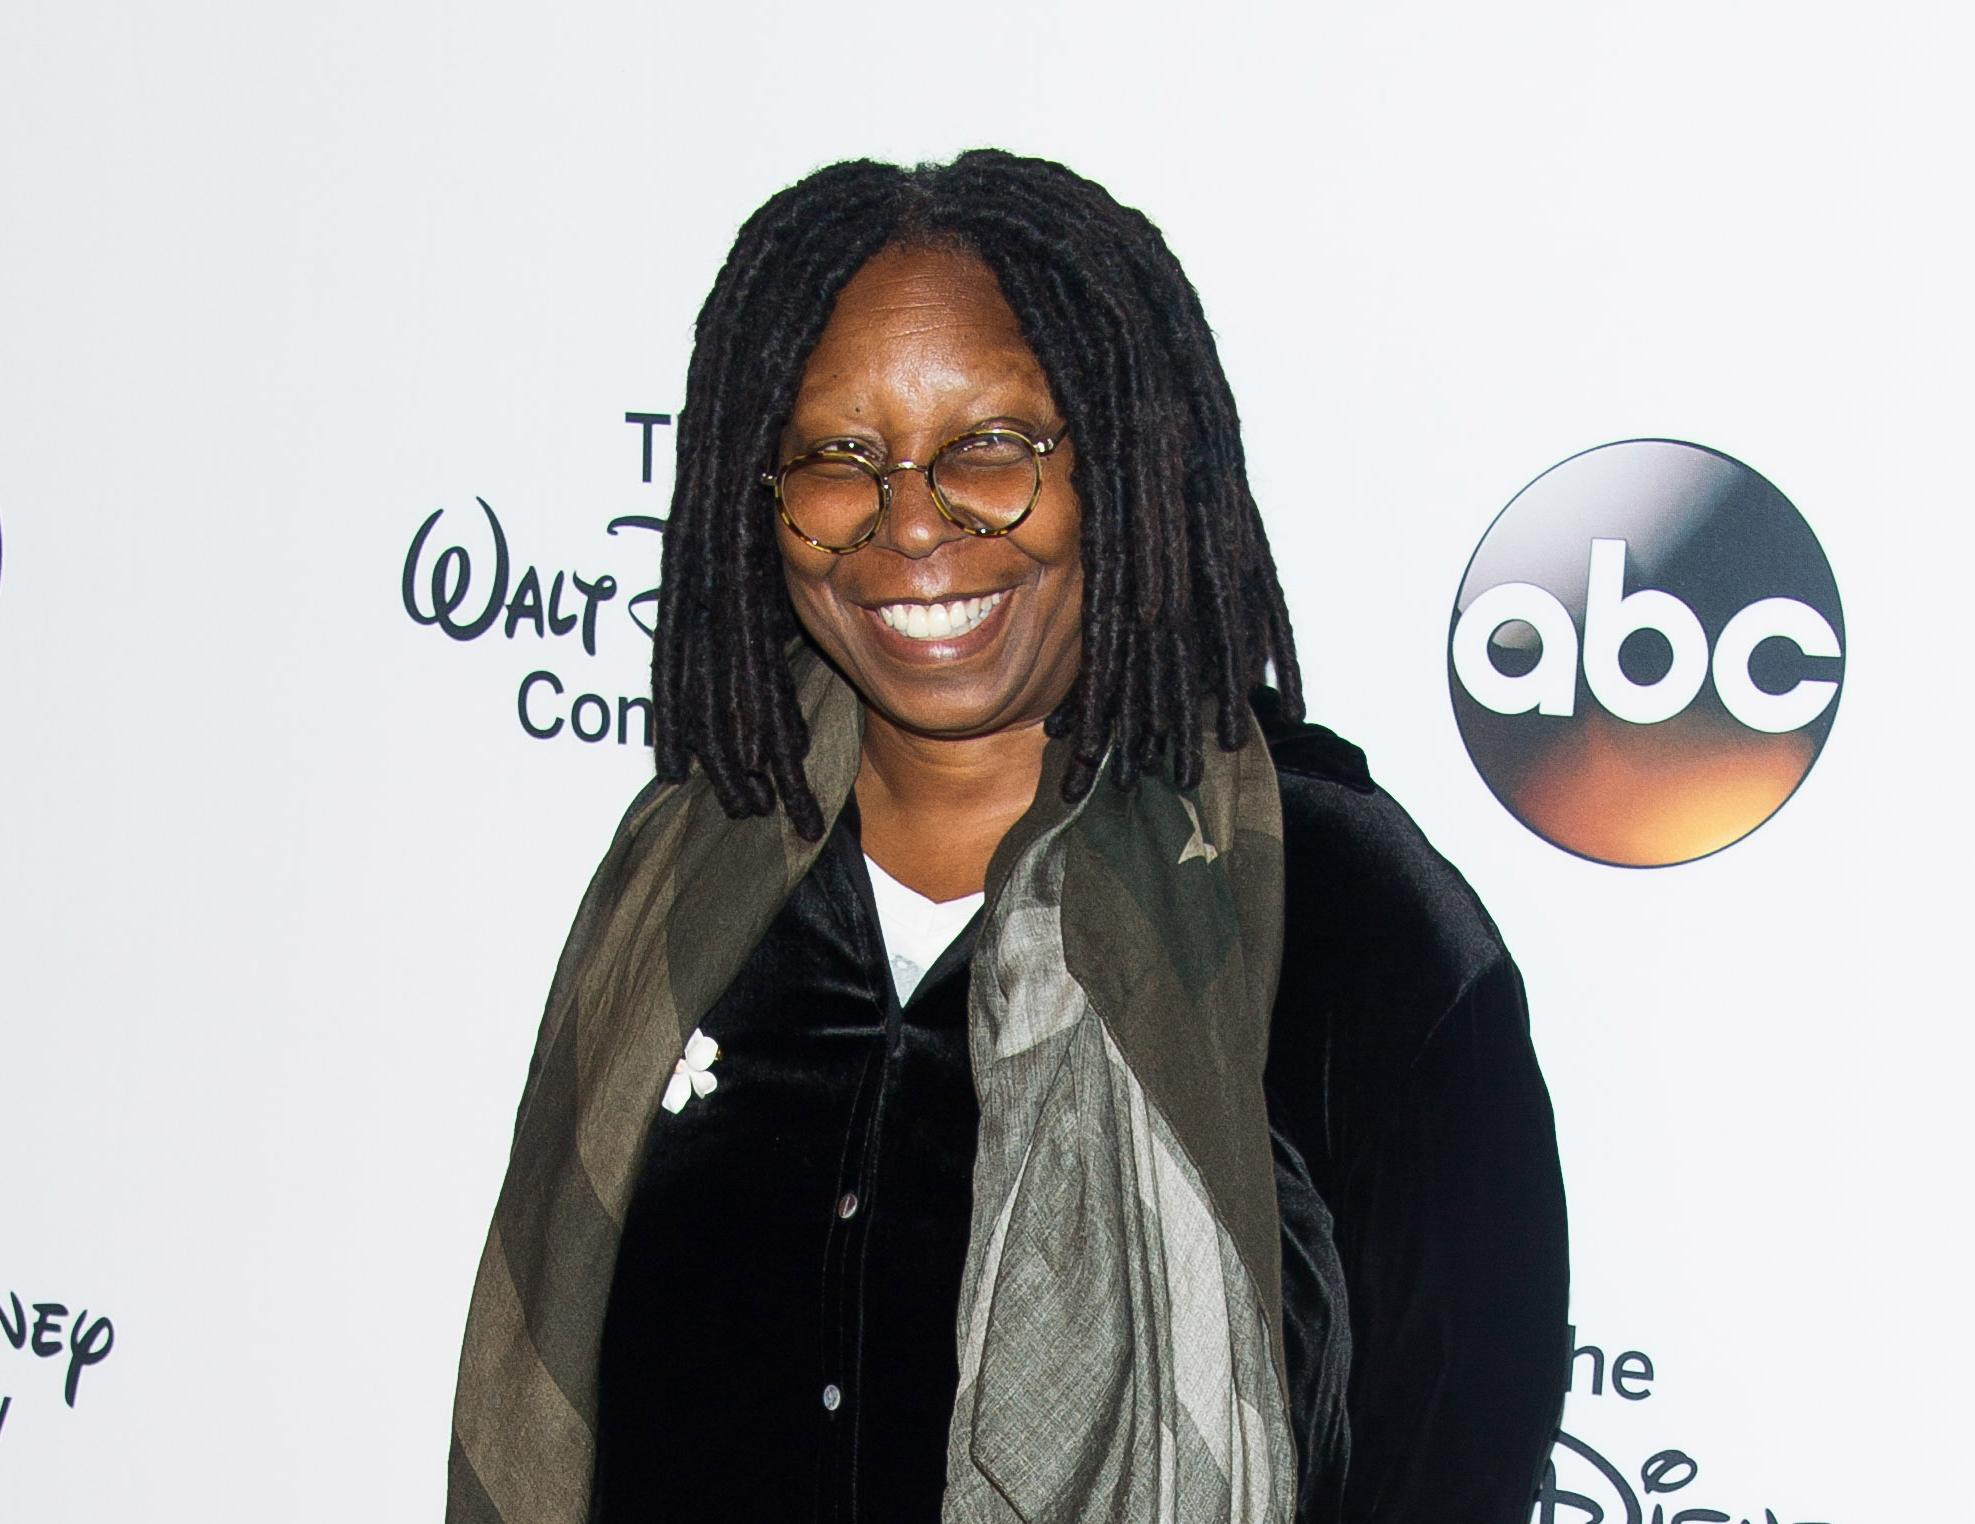 Whoopi Goldberg defends Bill Cosby: 'We all have friends who have